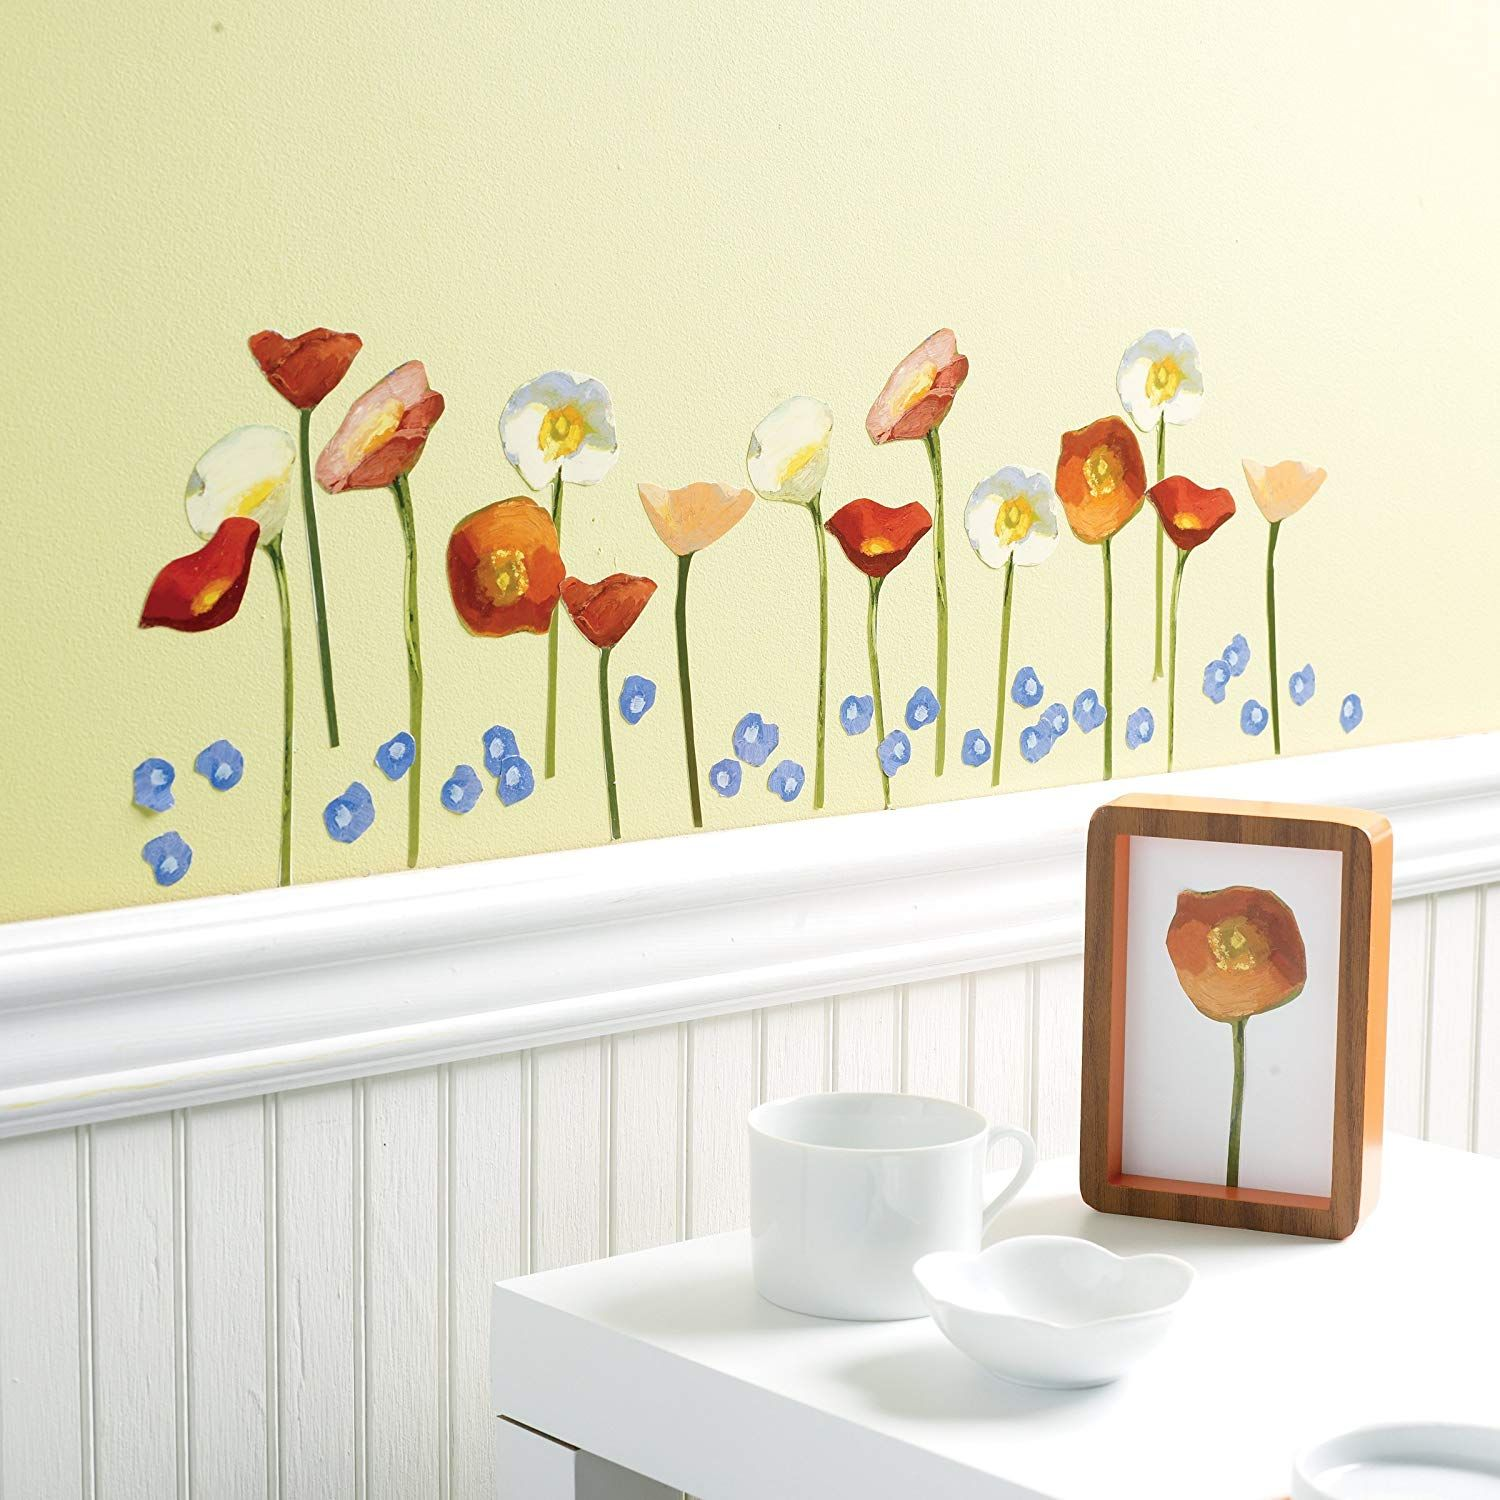 Amazon Com Wallies Wall Decals Springtime Poppies Wall Stickers Set Of 22 Home Kitchen Vinyl Wall Decals Wall Decals Wall Stickers